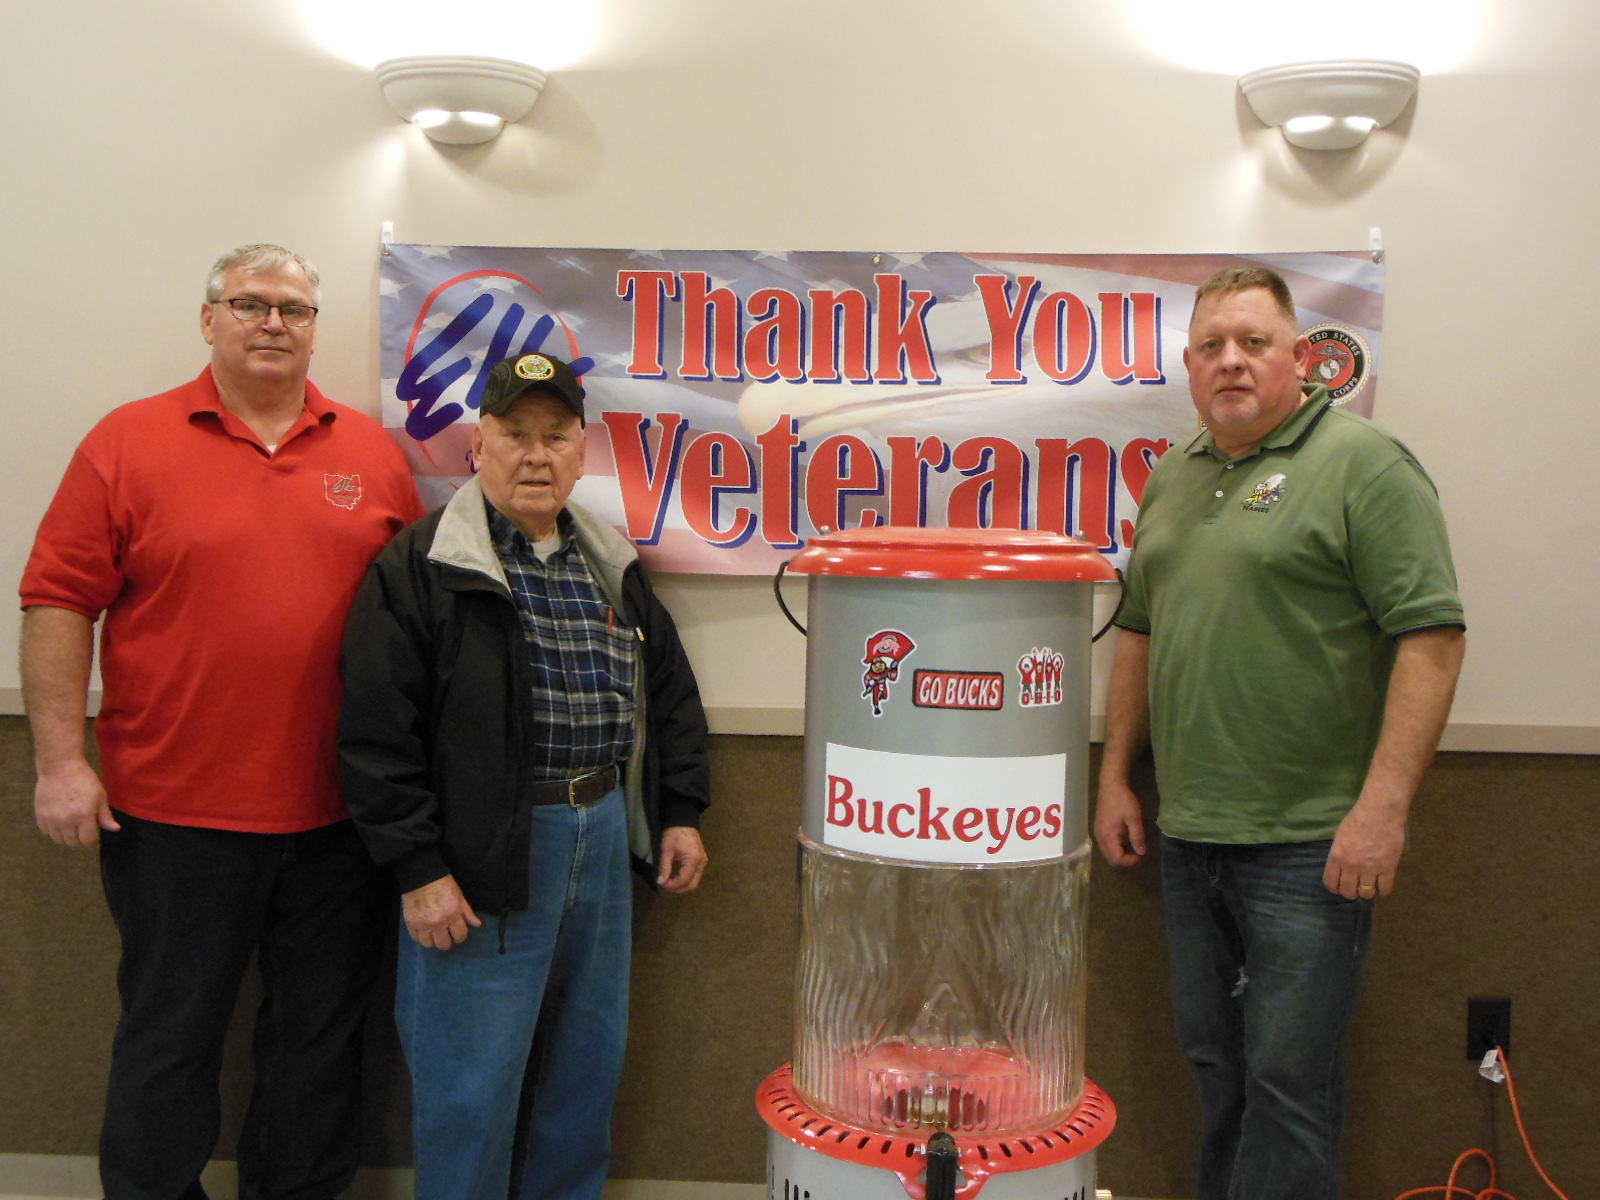 Pictured are, left to right: Keith Collins, Marine Veteran and Elks Lodge Veteran Committee Chairman; Carl Beck, US Army Veteran and lodge member who donated the lamp and Raymond Haas, US Navy Veteran and lodge member who was the winner of the lamp.